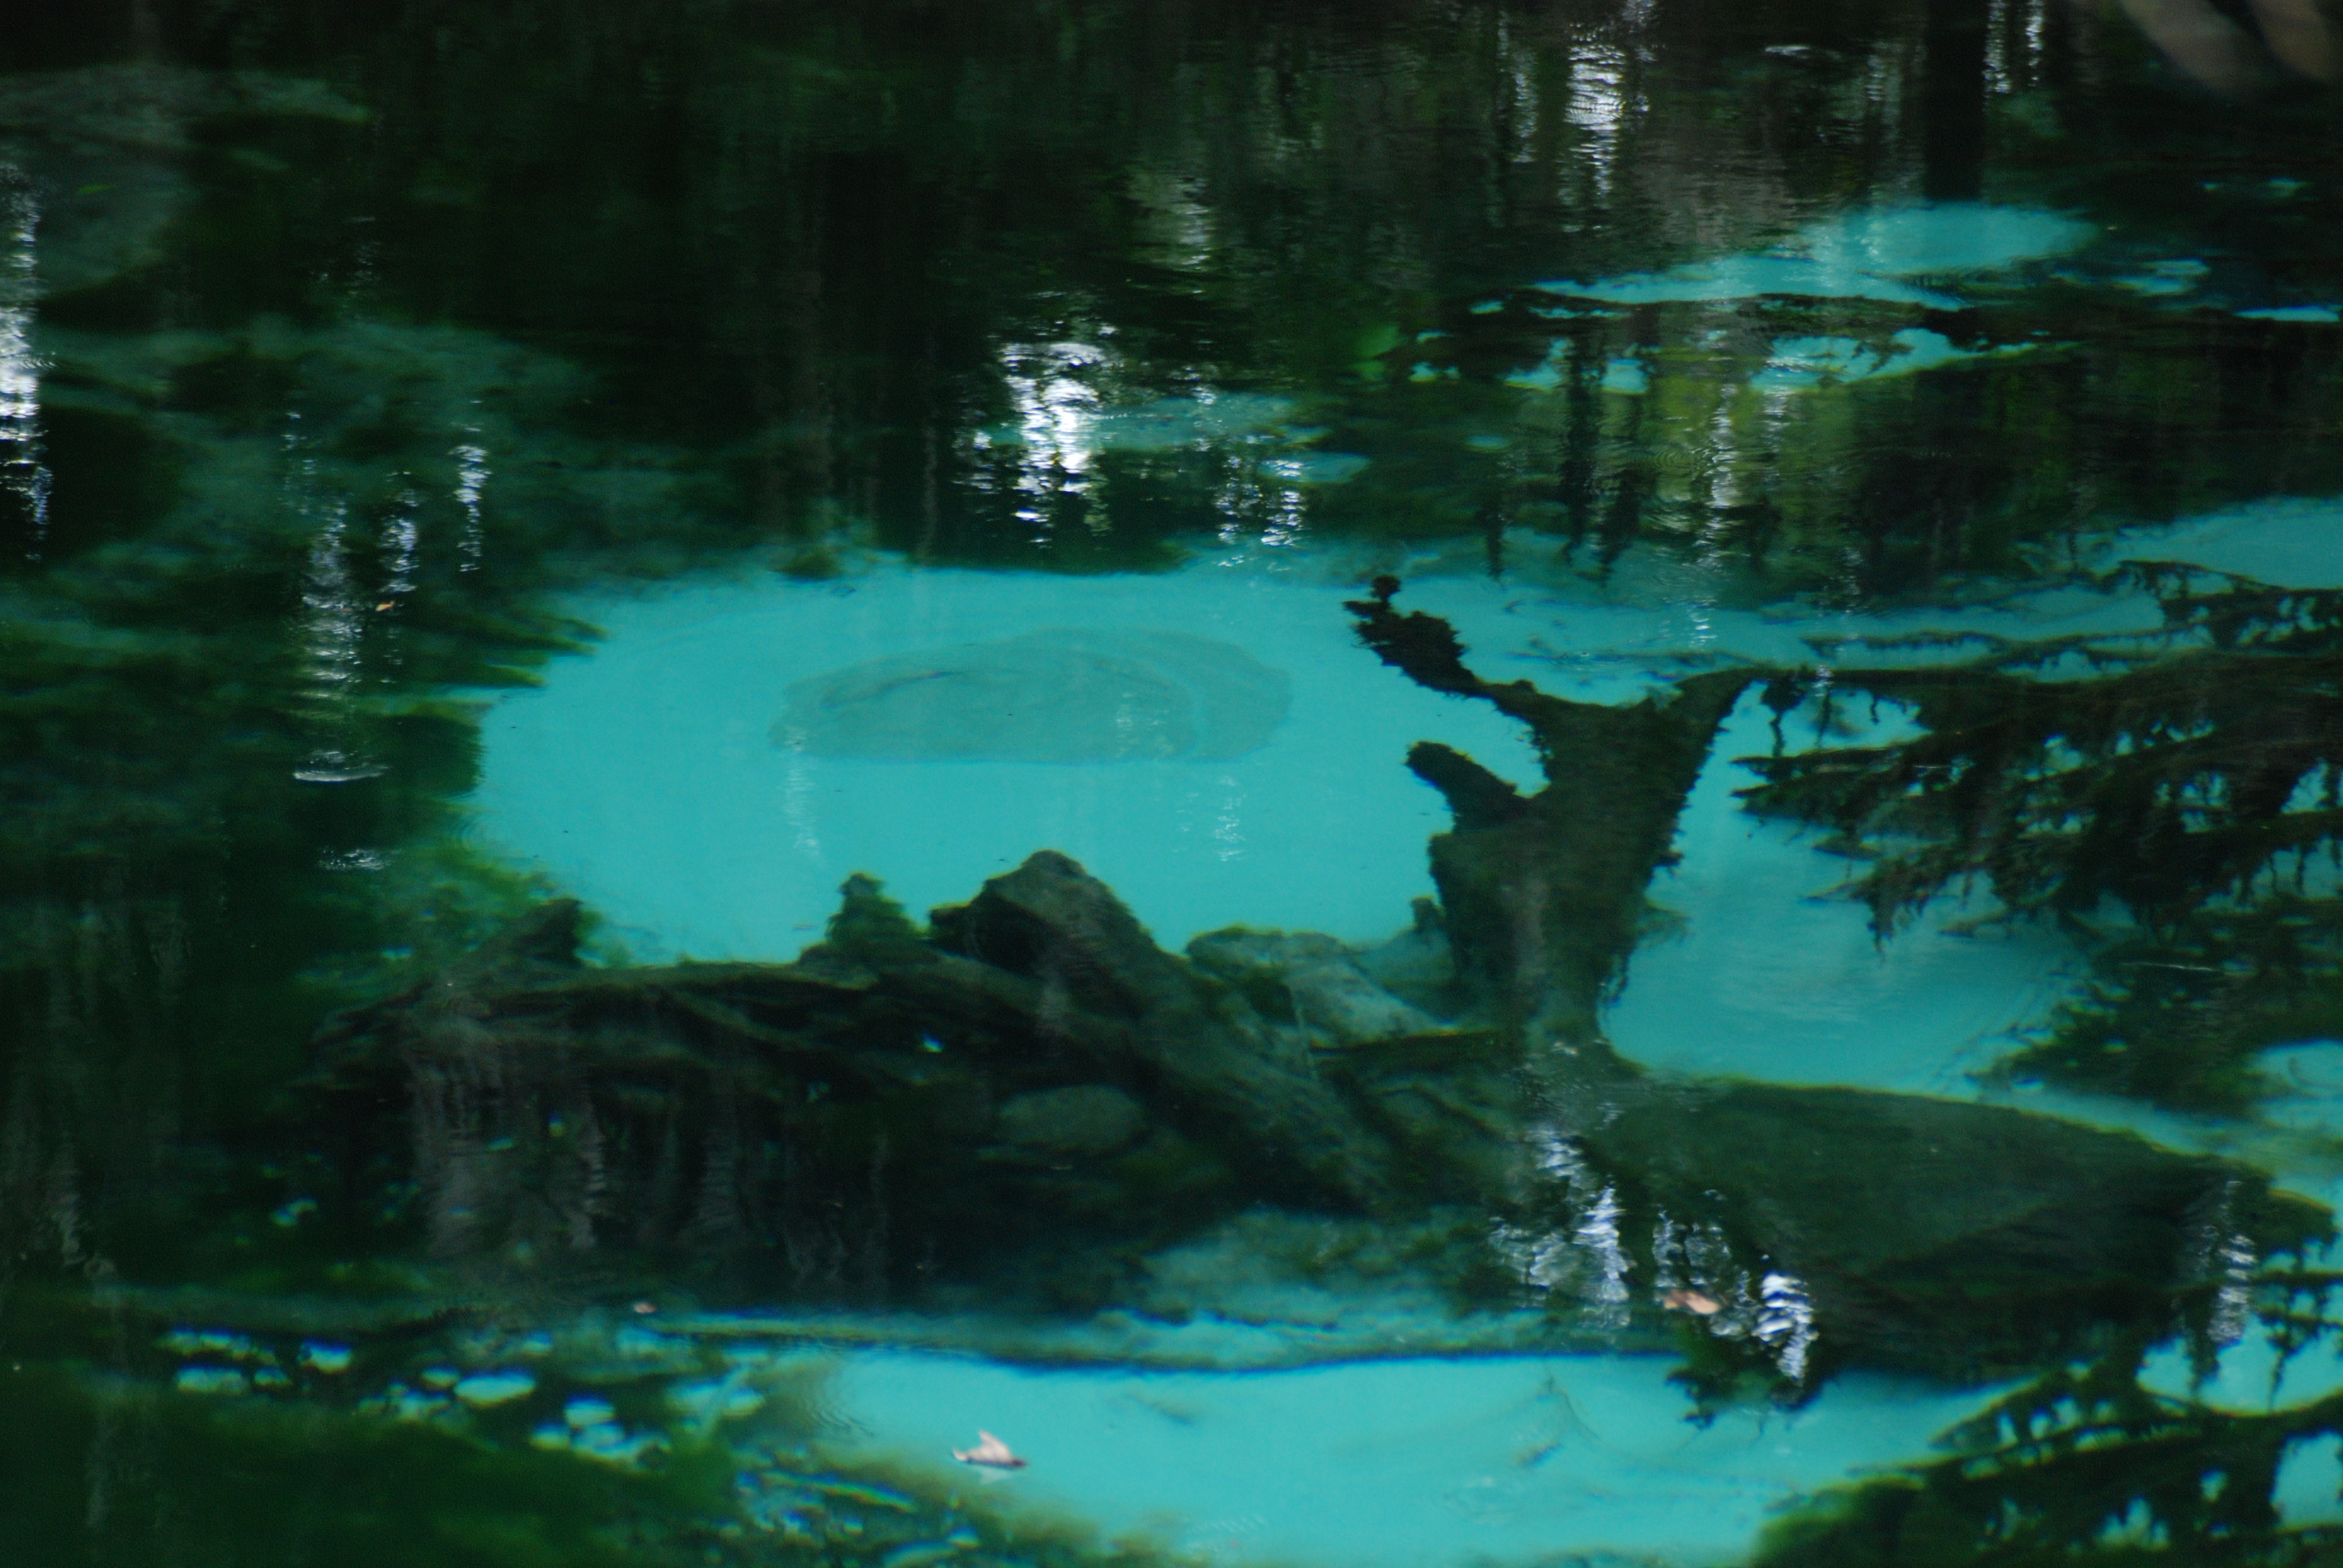 Turquoise spring vents at Fern Hammock Springs